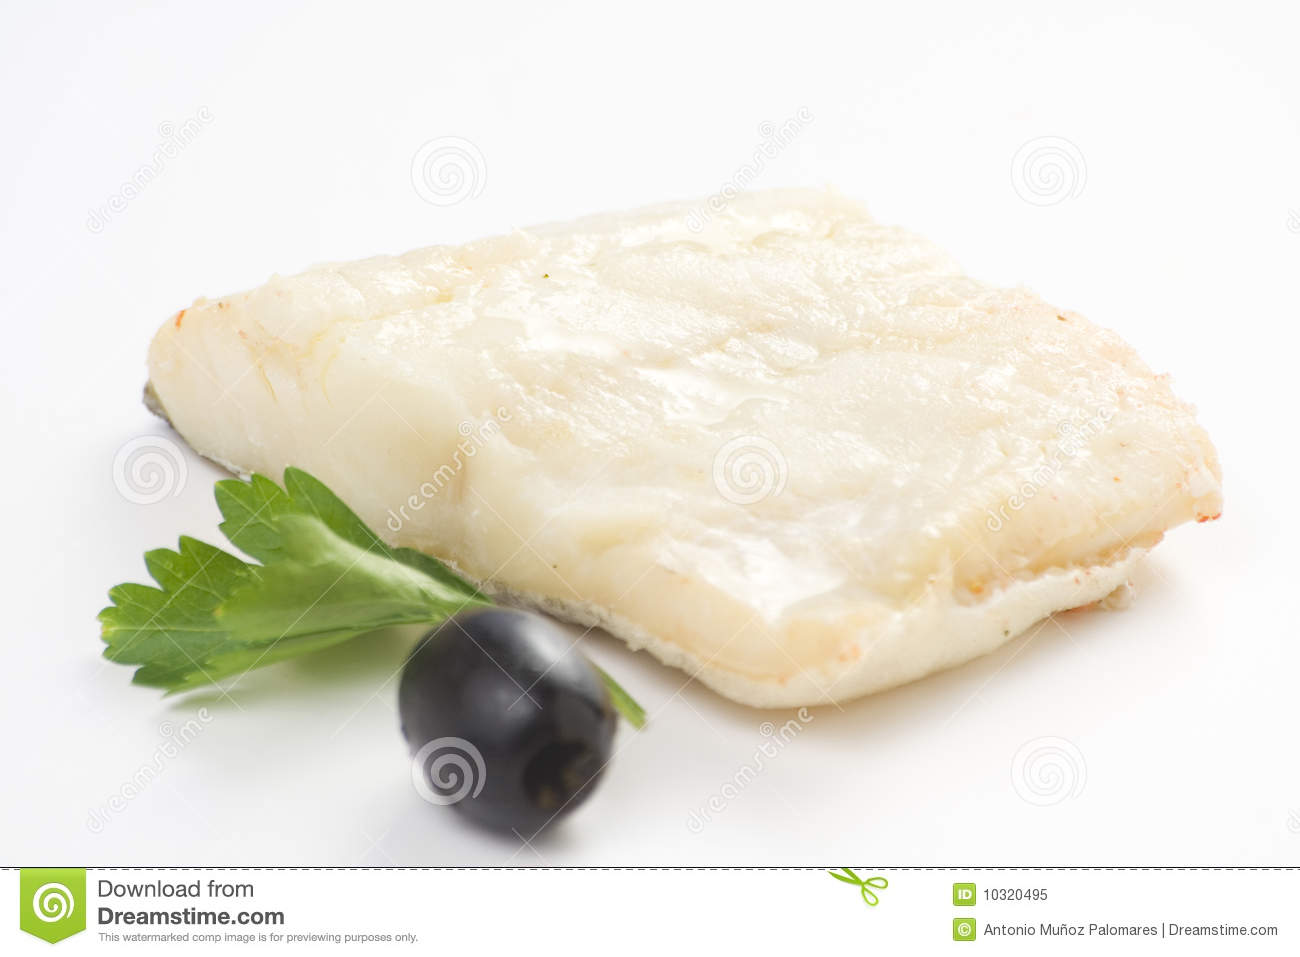 how to cook cod fish fillet